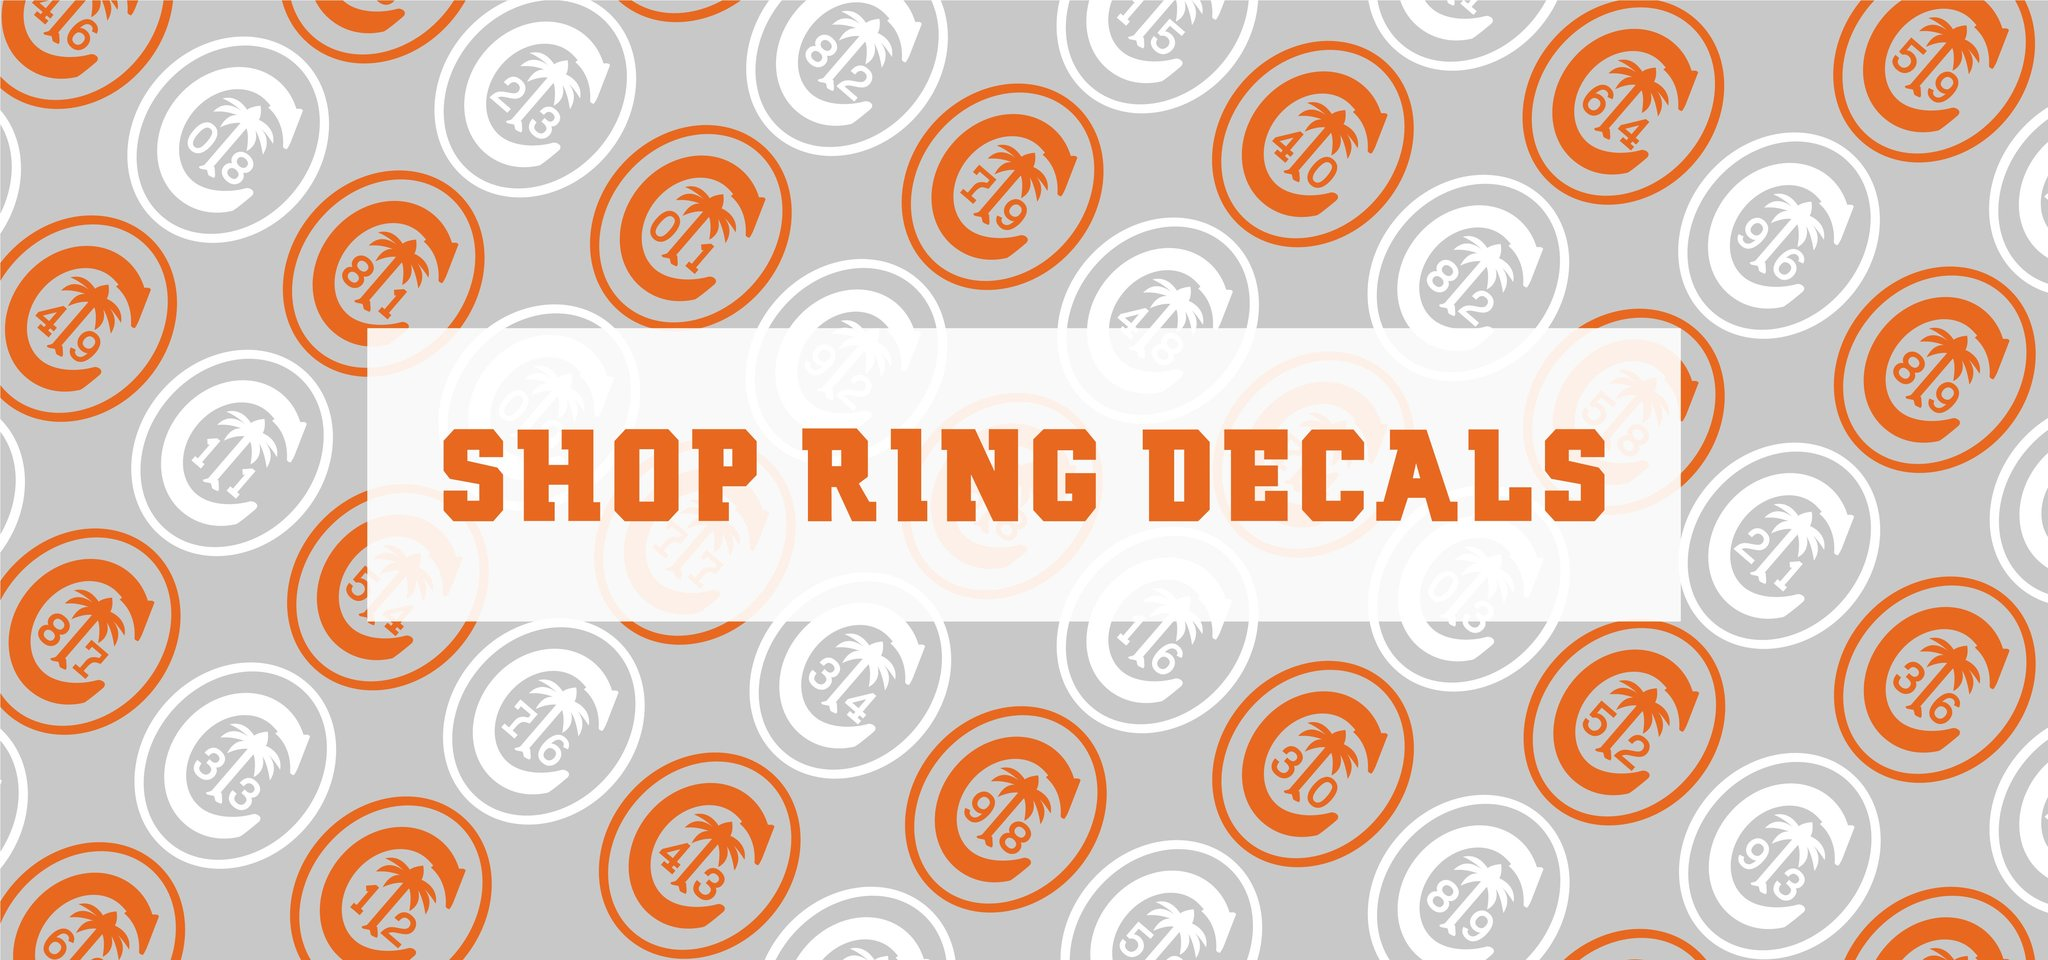 ring decals